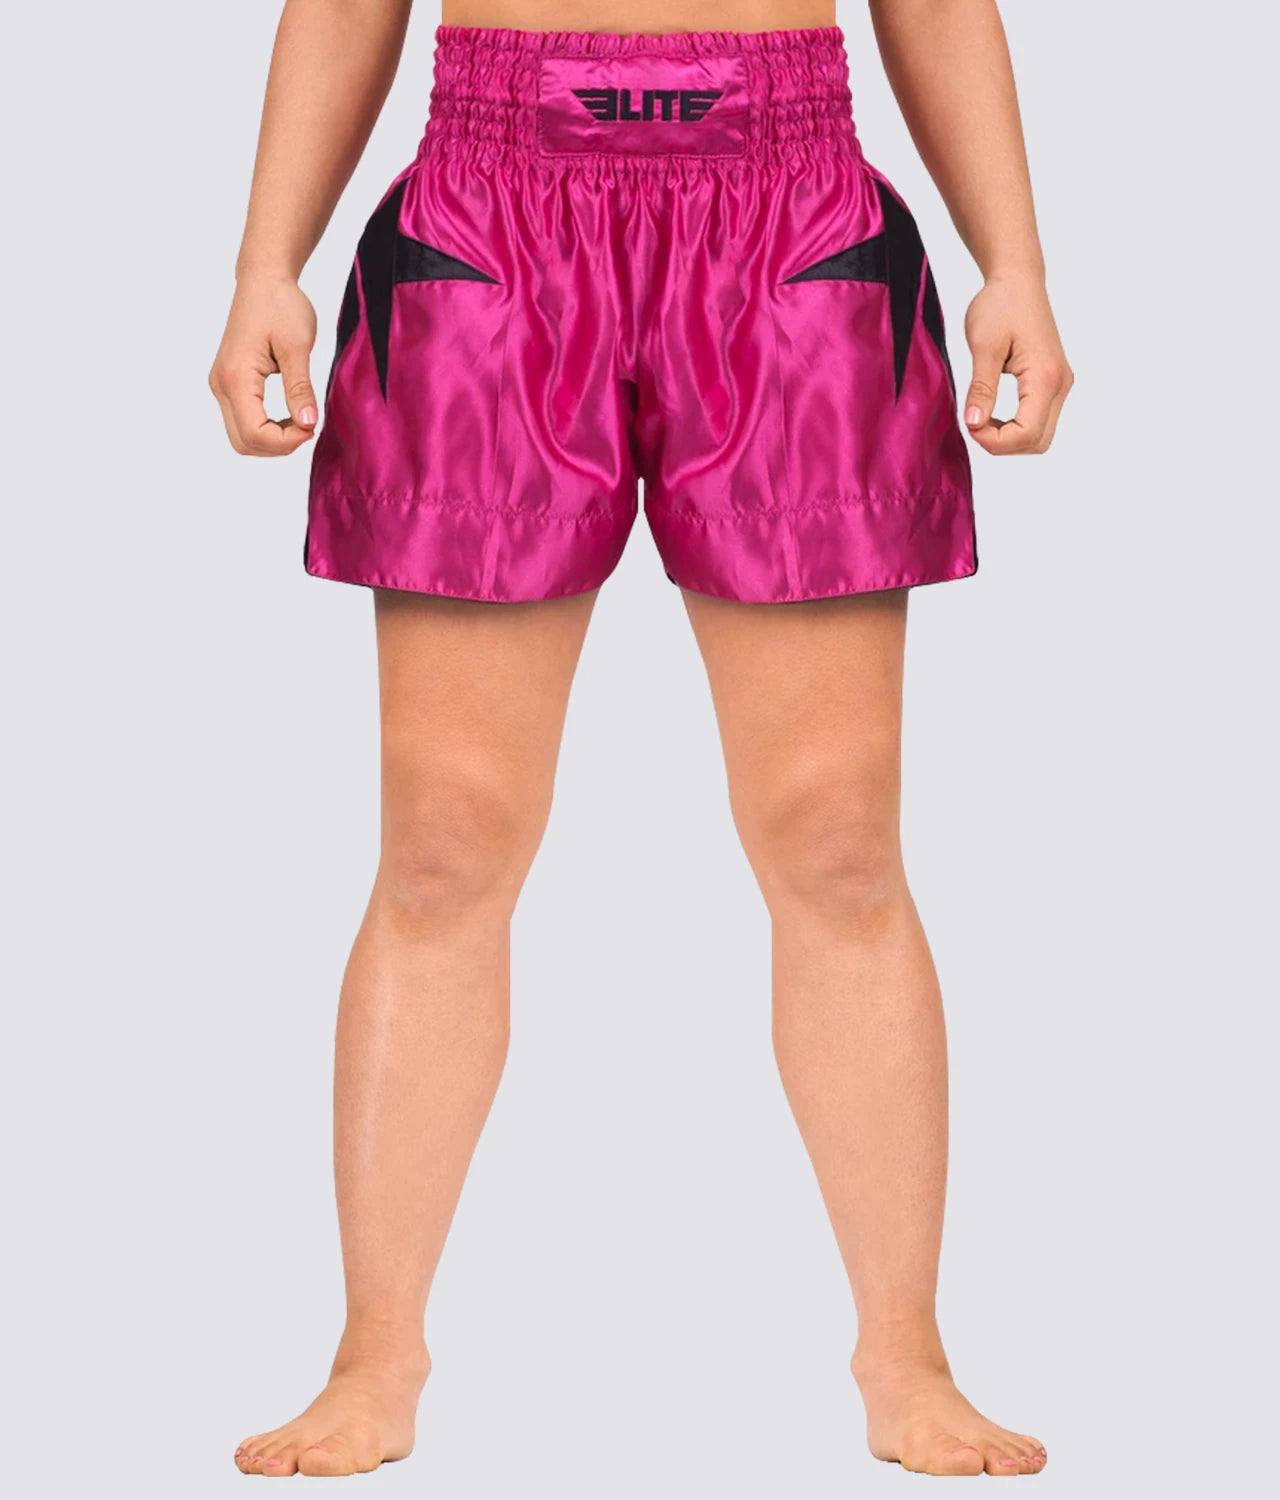 Elite Sports Star Series Sublimation Pink Muay Thai Shorts